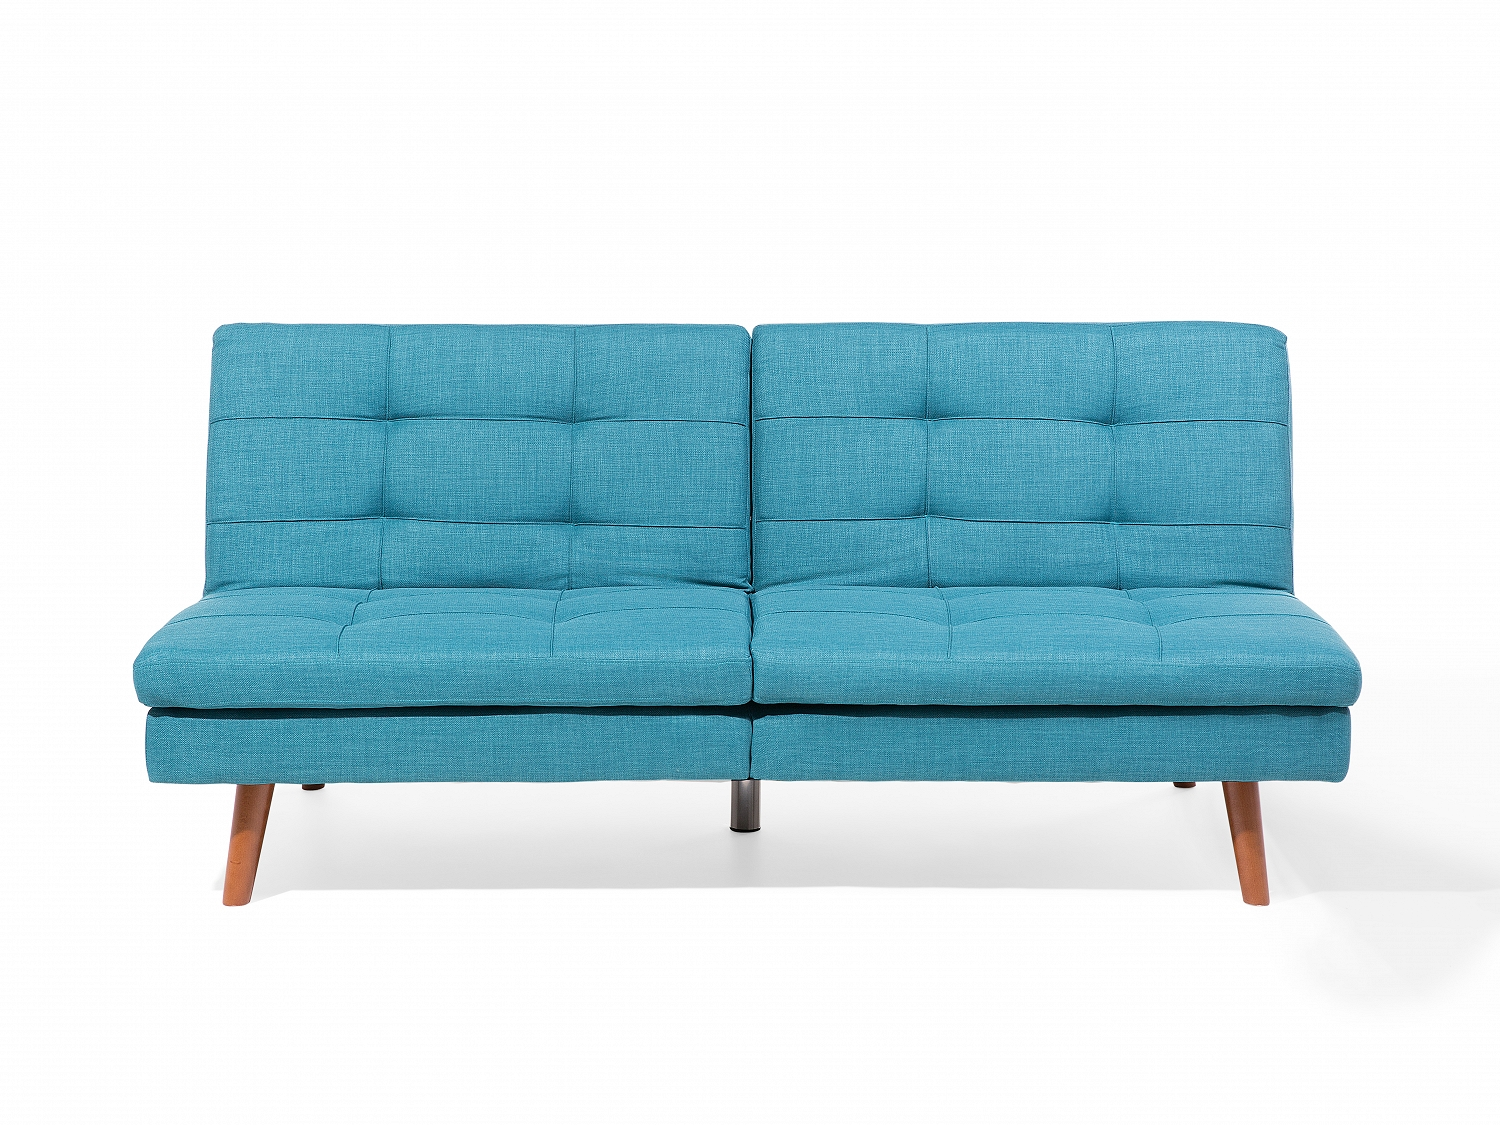 Sofa blau schlafsofa couch schlafcouch bettsofa bett for Bettsofa schlafsofa